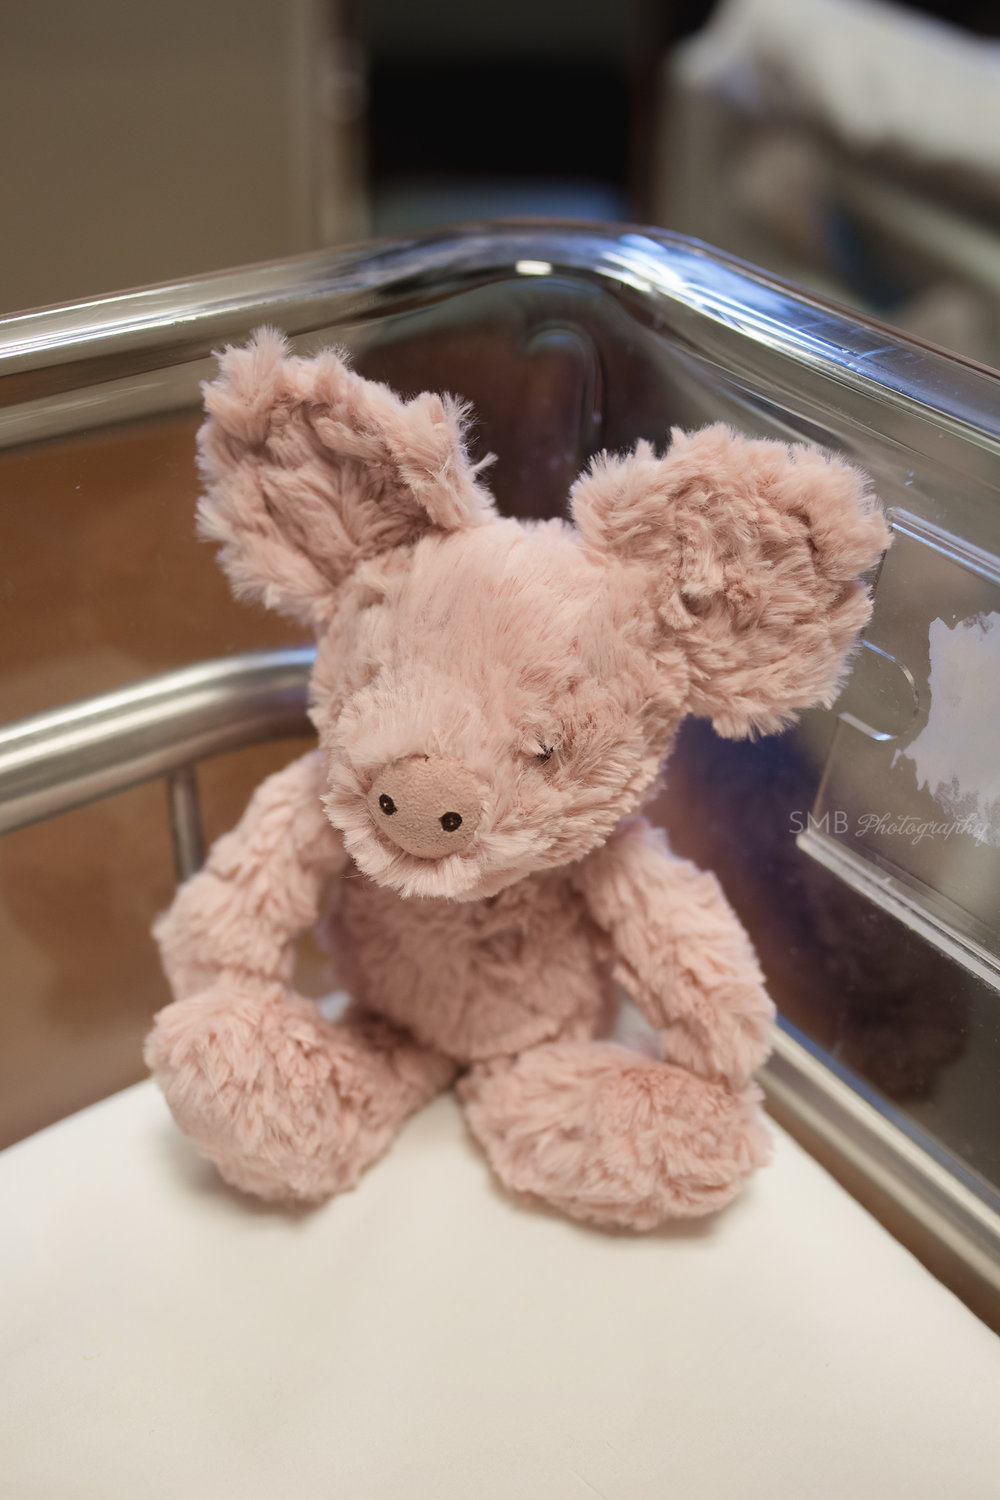 Stuffed animal in hospital bassinet